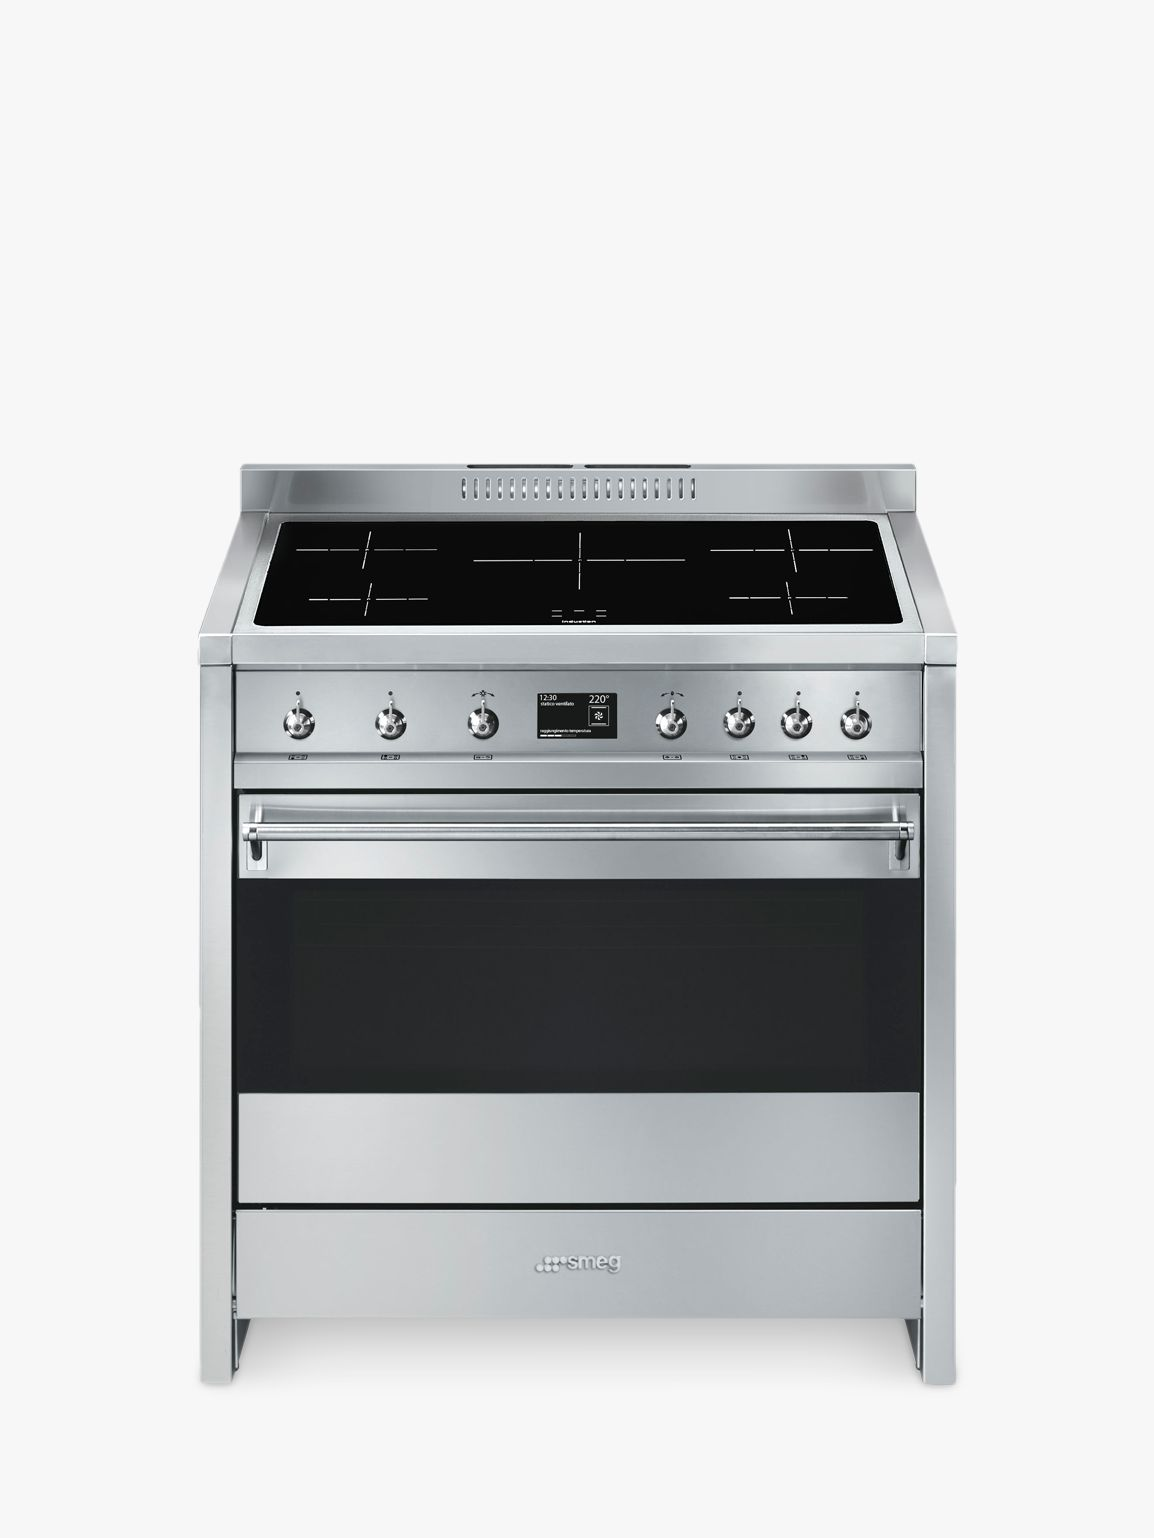 hight resolution of buysmeg a1pyid 9 90cm electric single oven cooker a energy rating stainless steel